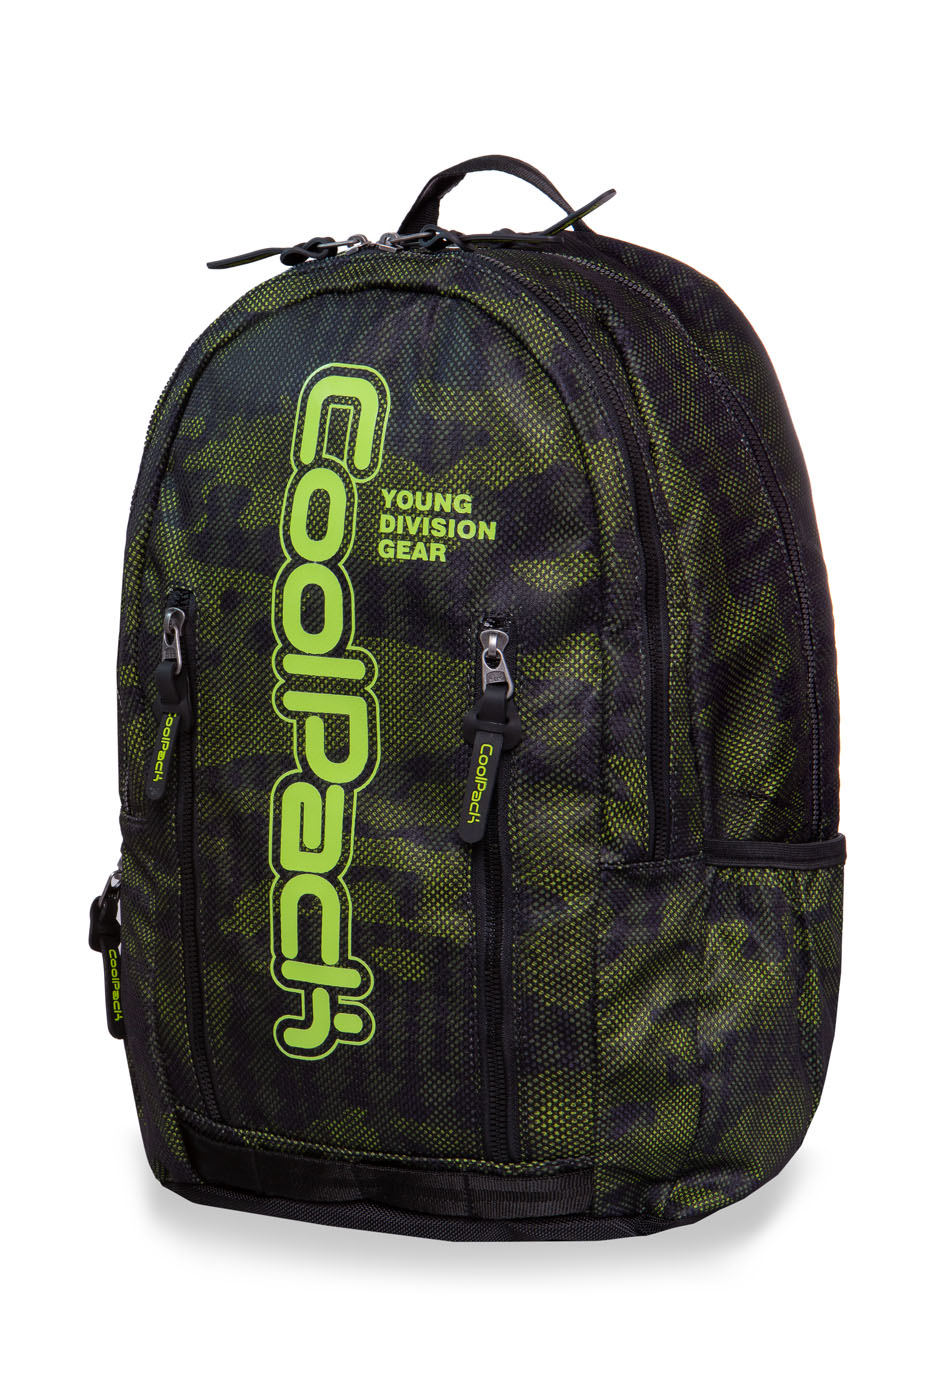 Coolpack - impact ii - youth backpack - army moss green